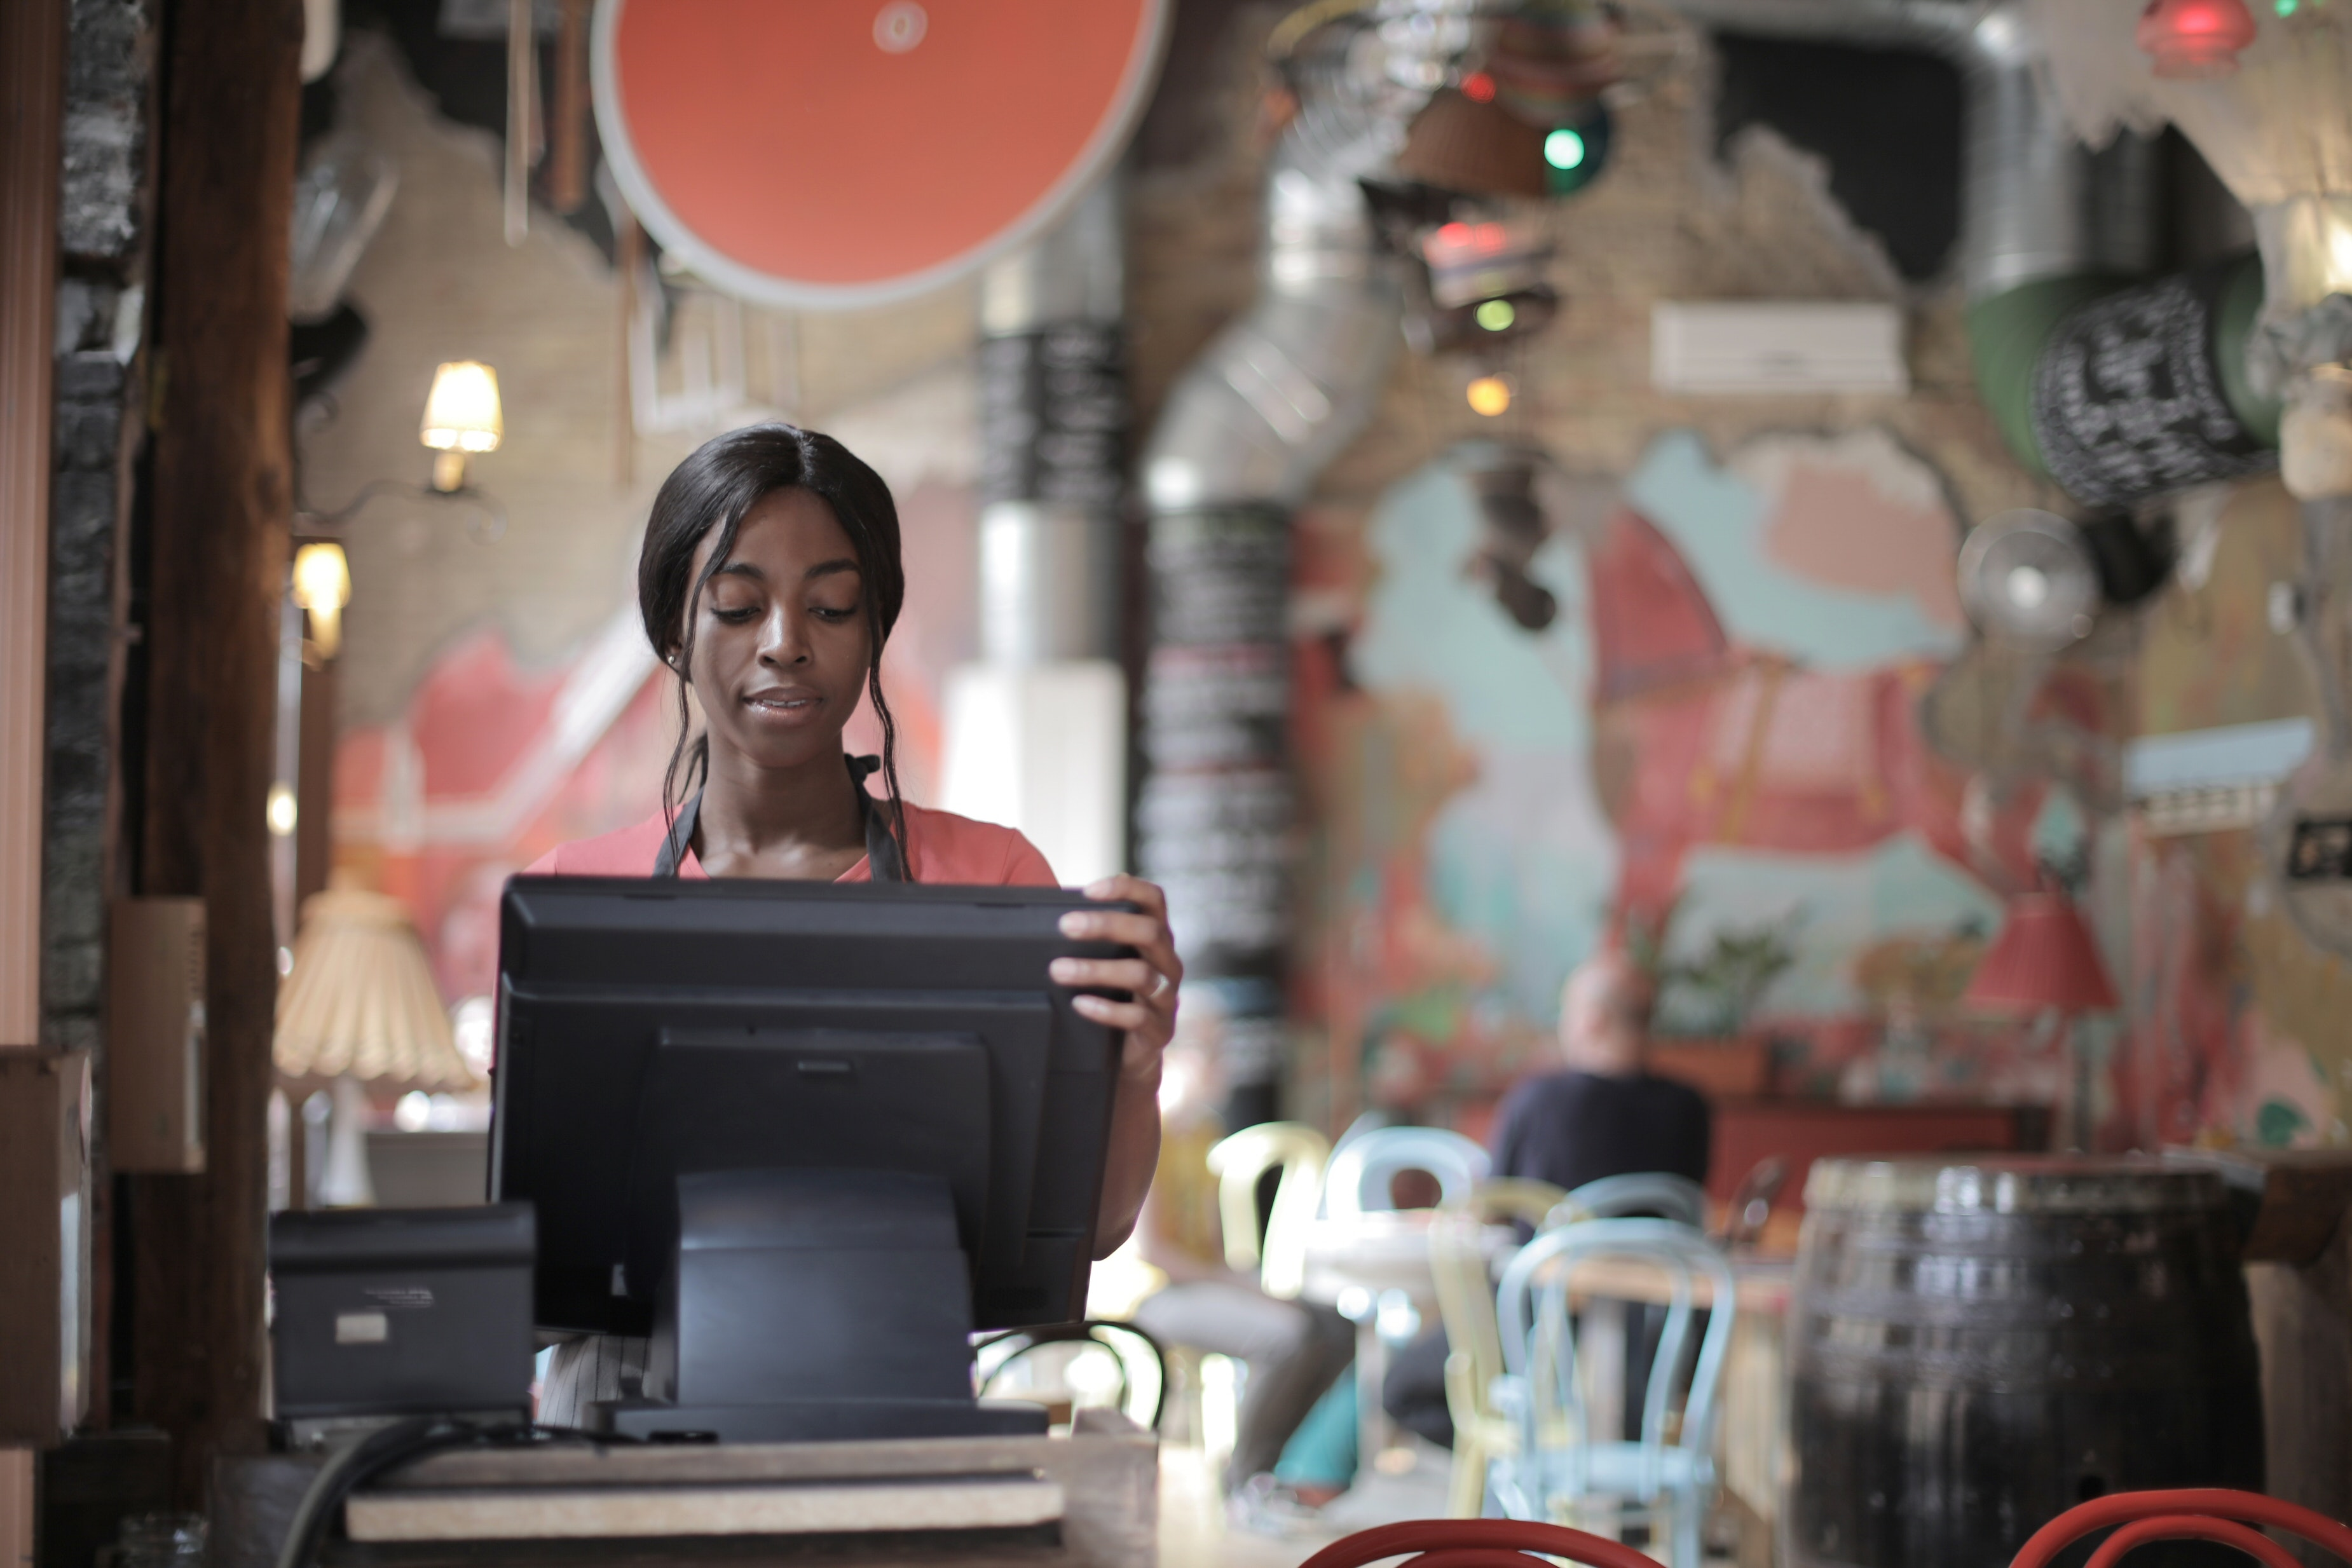 Restaurant POS Systems: Things Every New Restaurateur Should Know